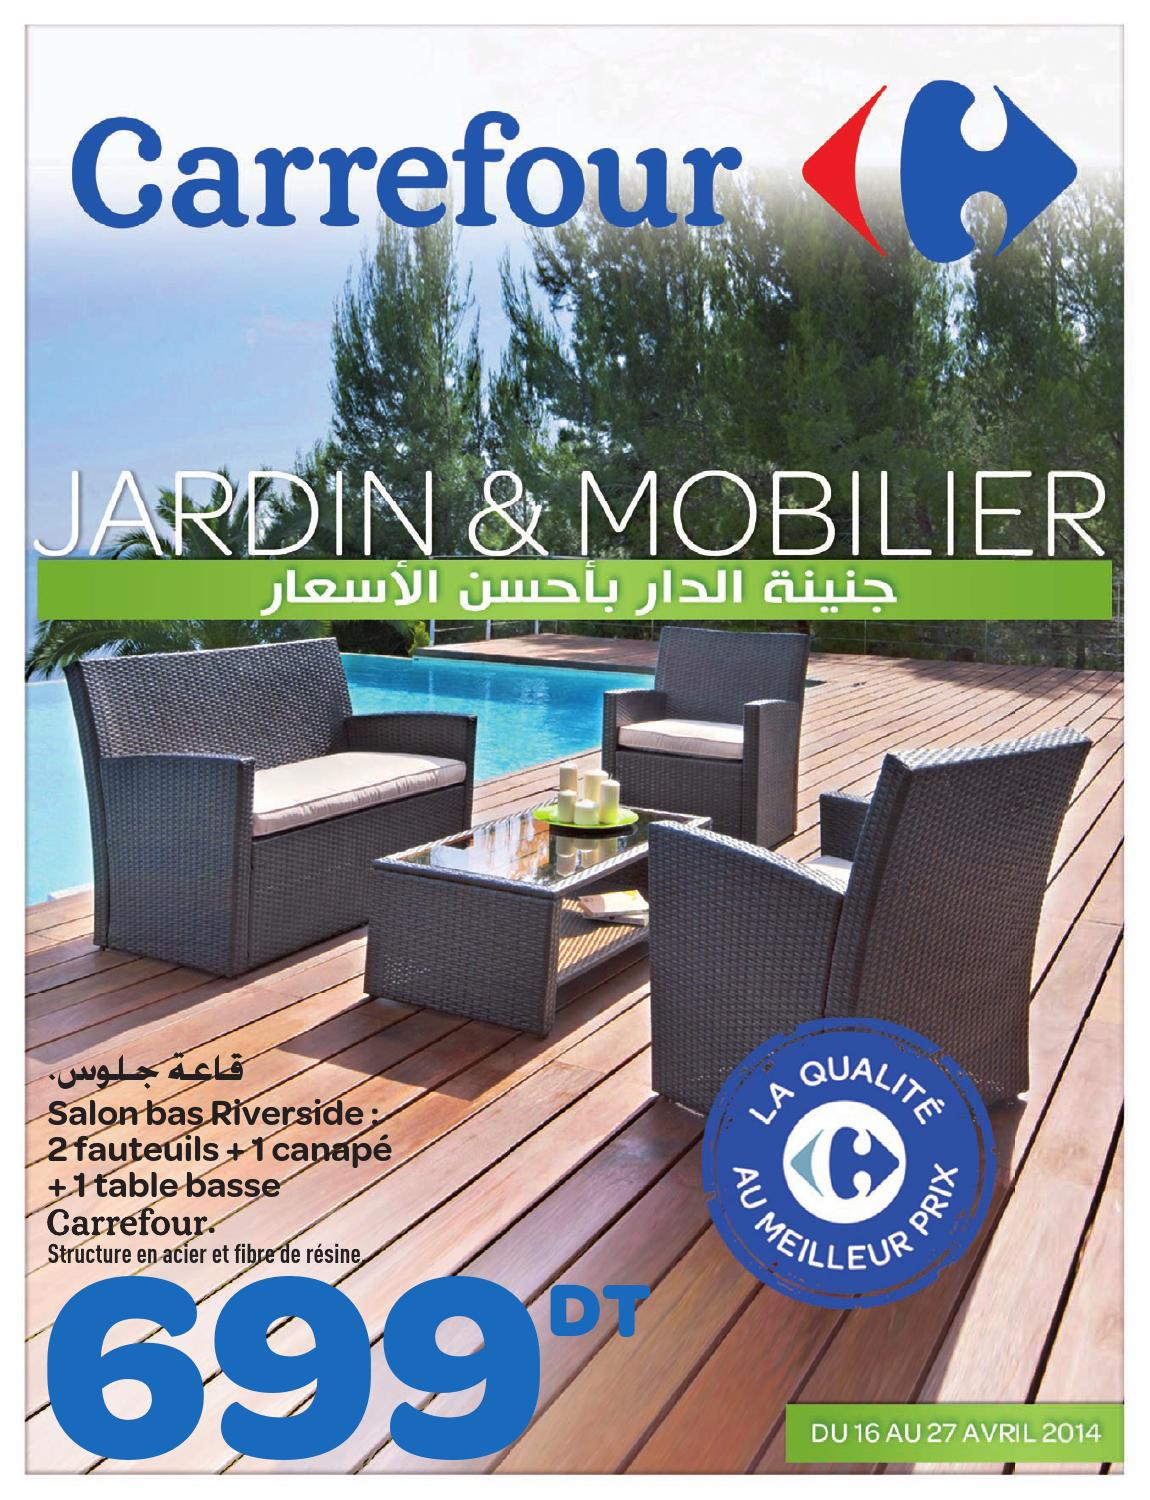 Catalogue carrefour jardin et mobilier by carrefour for Meuble de jardin carrefour belgique